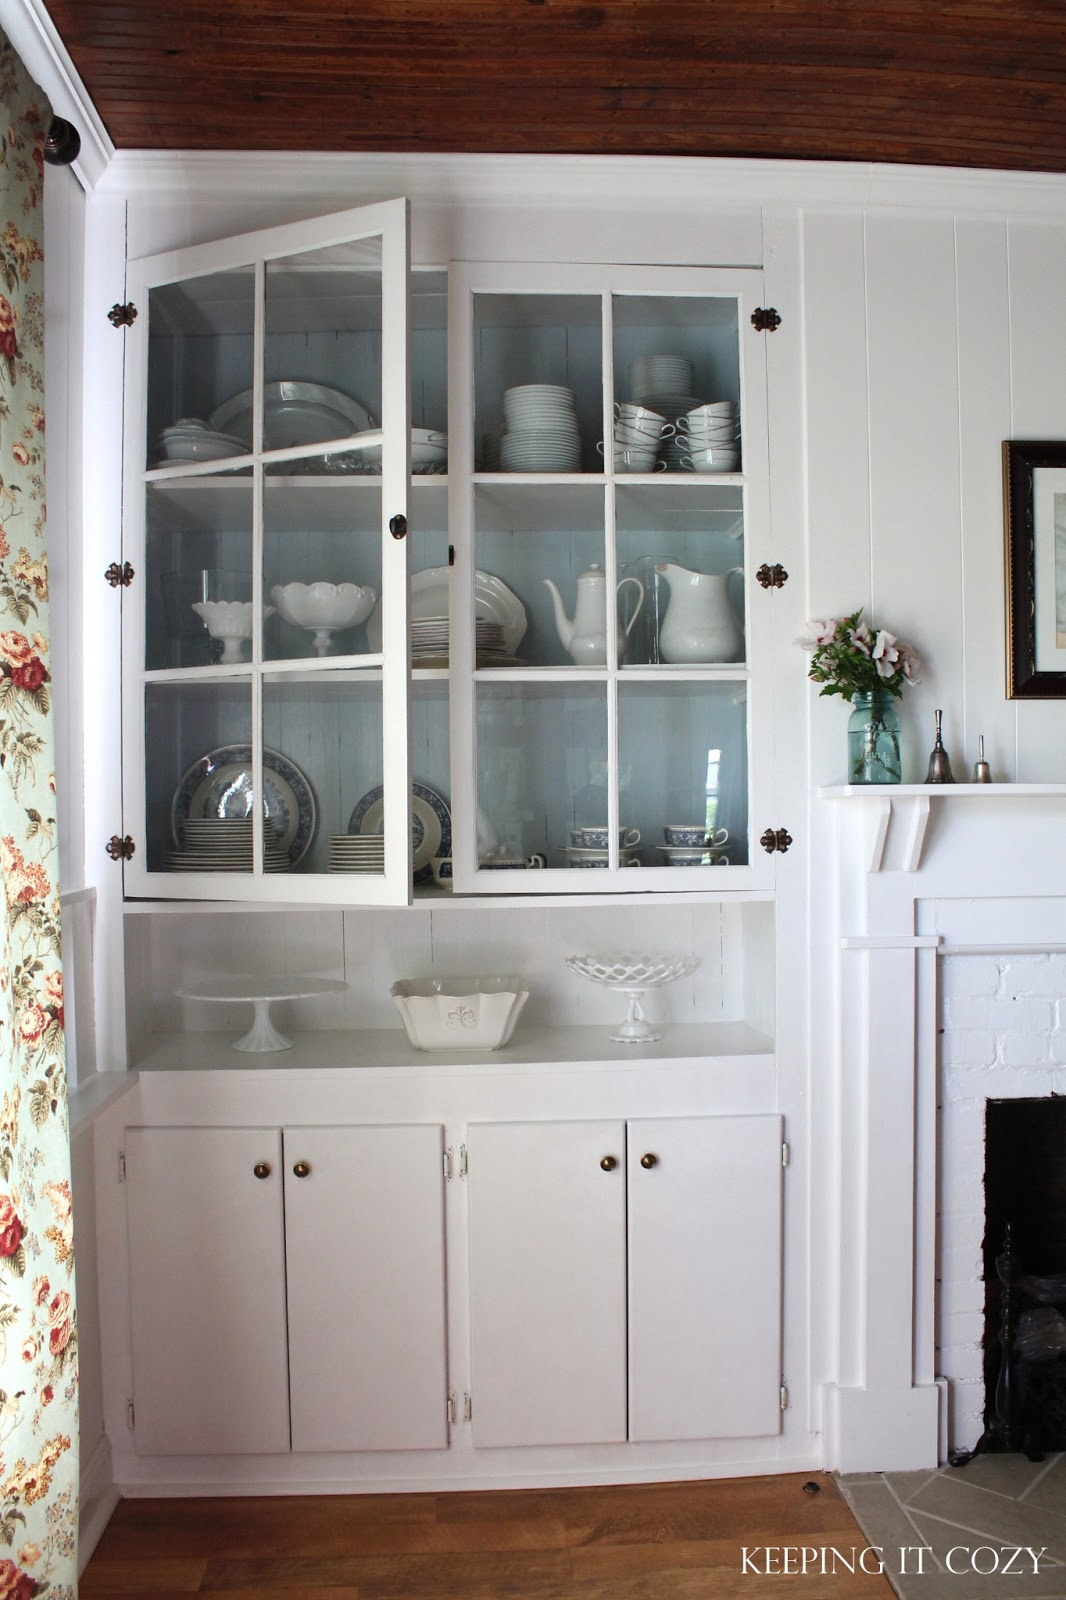 Keeping it cozy in the dining room hutch for Dining room cupboard designs